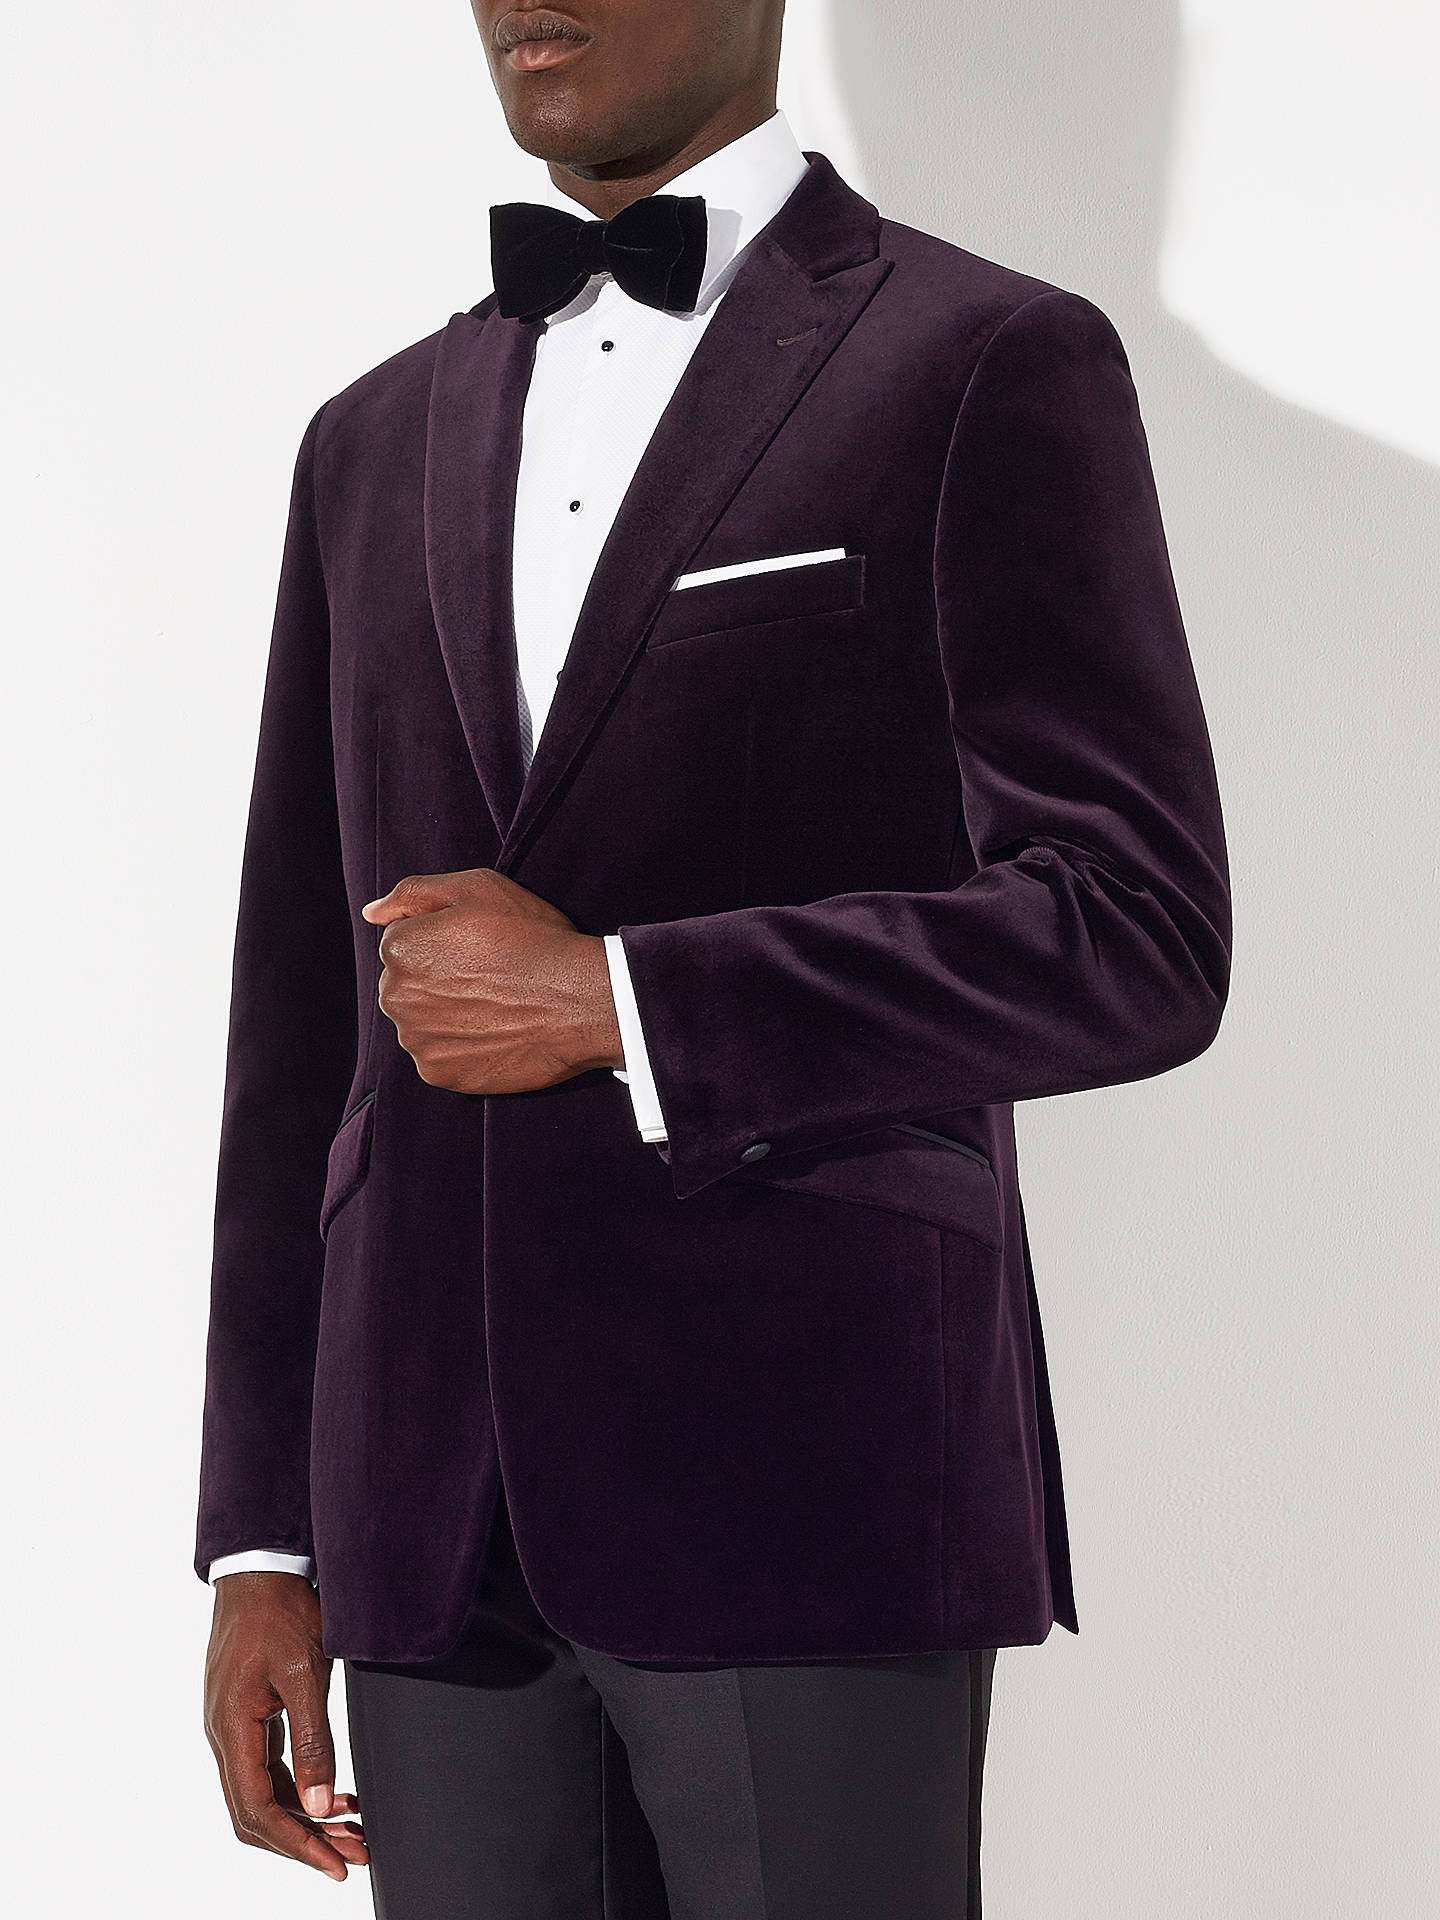 BuyJohn Lewis Velvet Peak Lapel Tailored Blazer, Aubergine, 38R Online at johnlewis.com